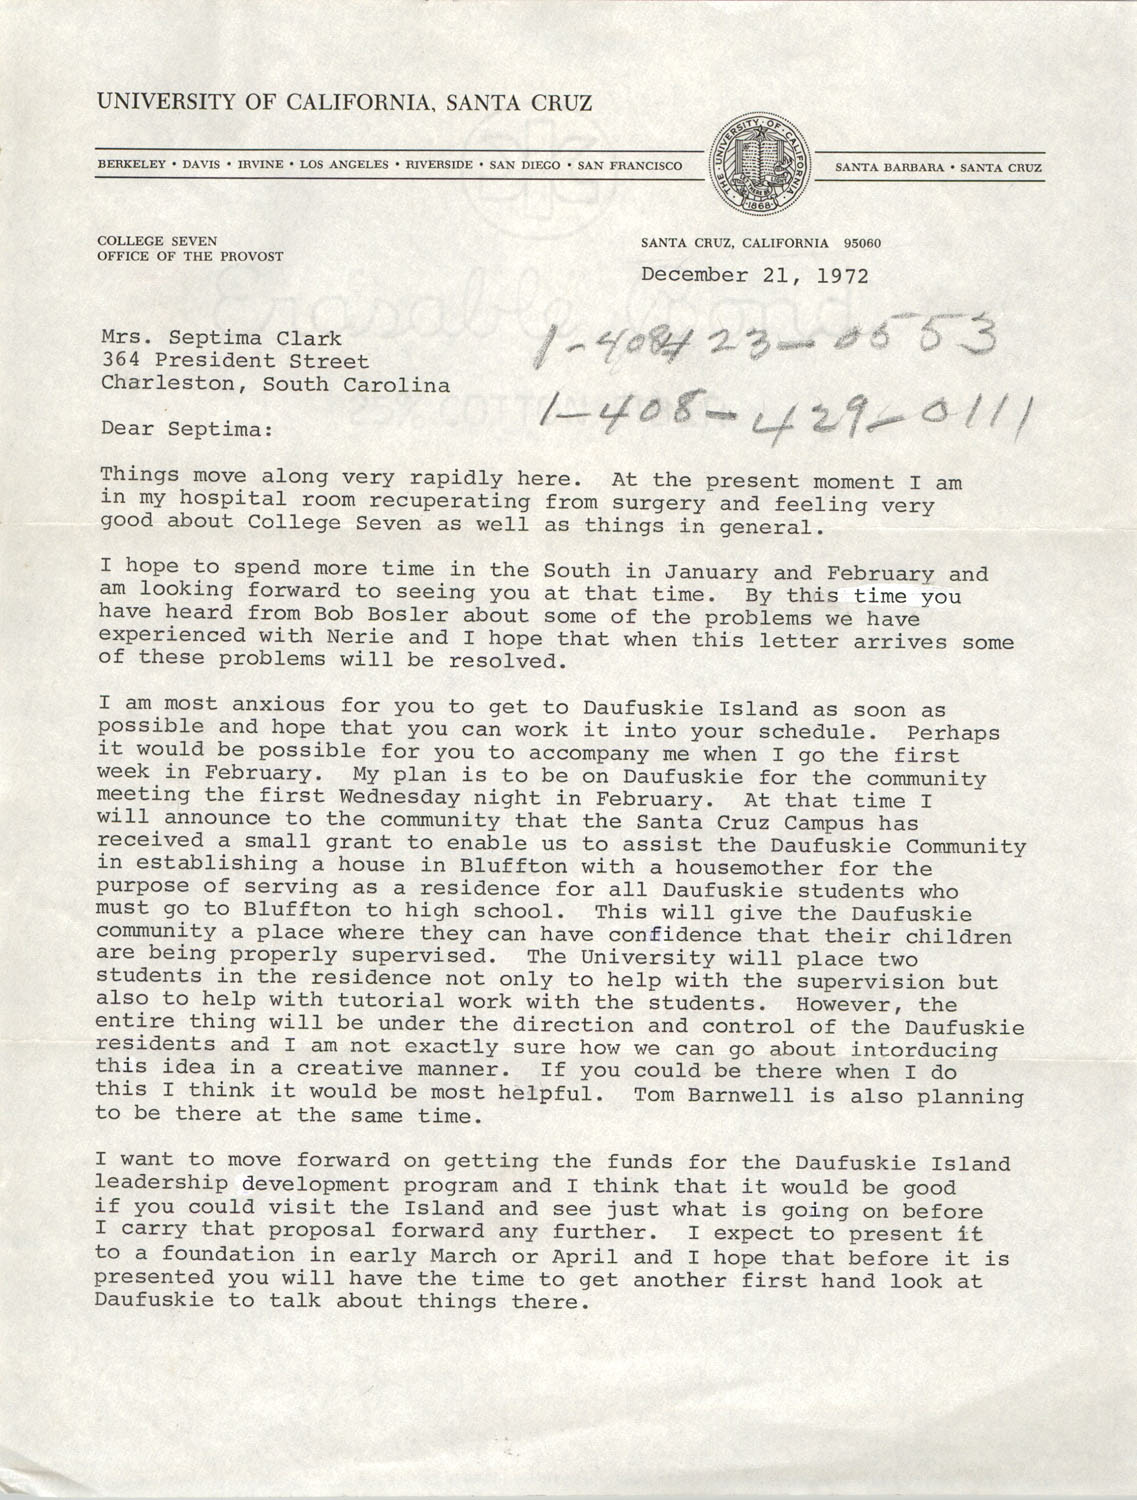 Letter from J. Herman Blake to Septima P. Clark, December 21, 1972